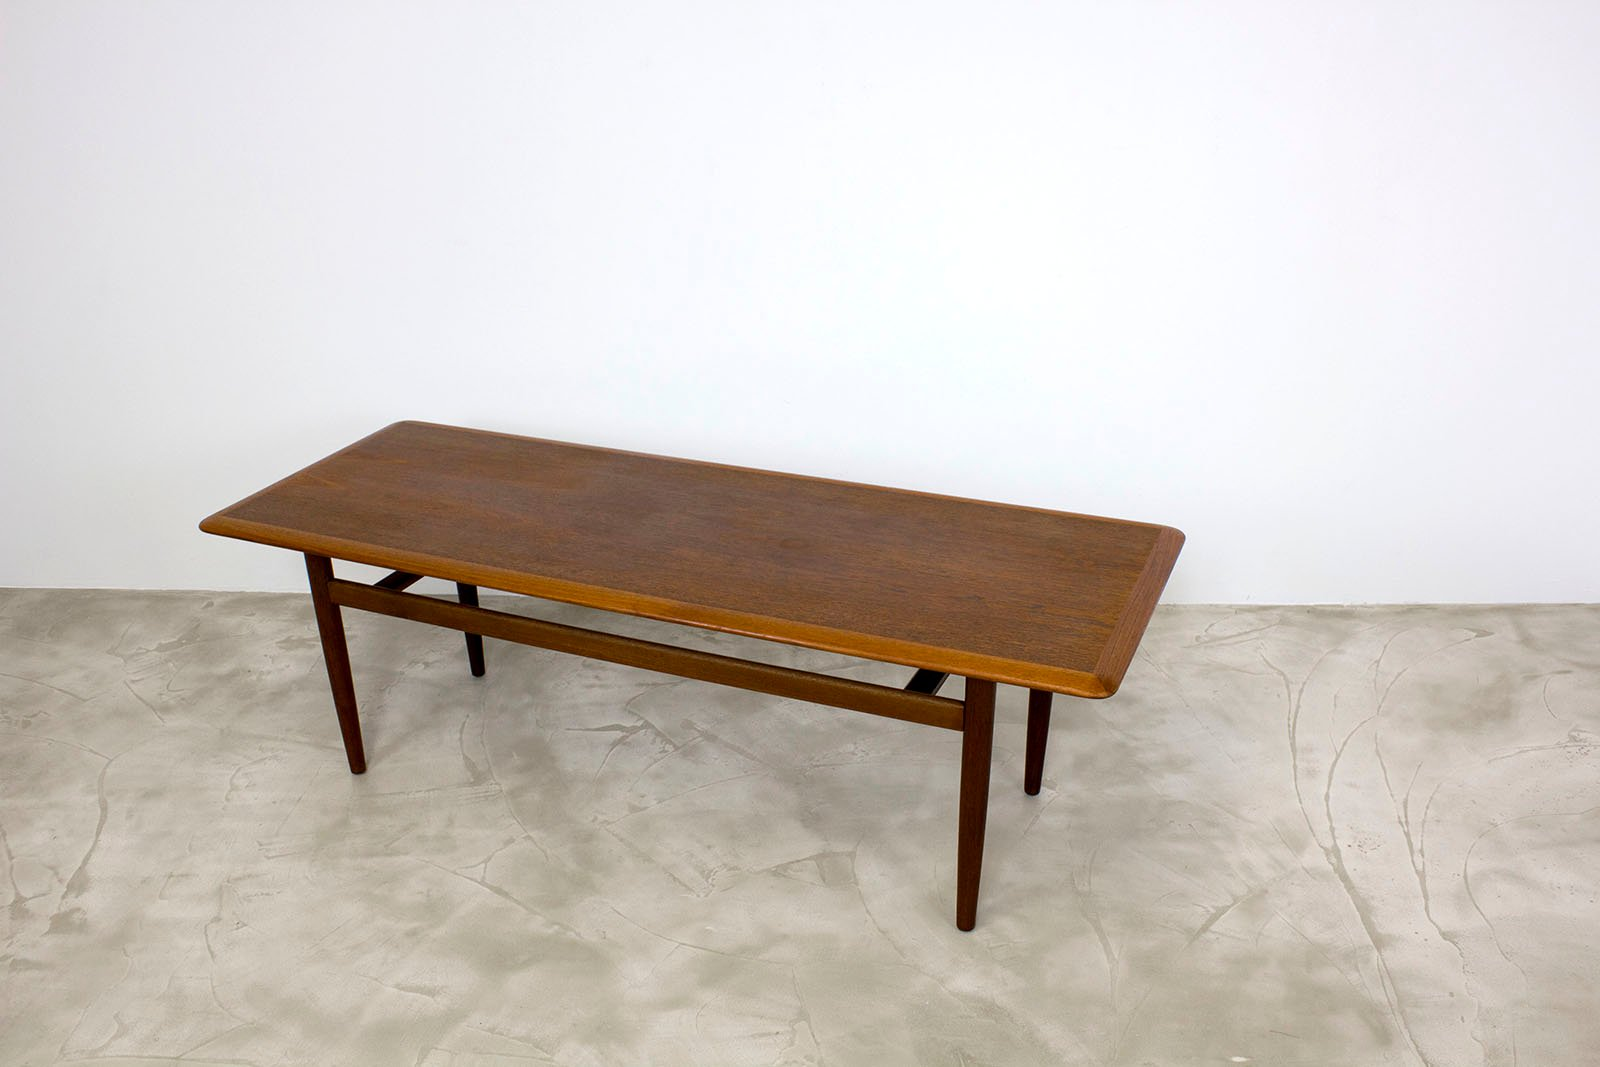 Danish Modern Teak Coffee Table, 1960s for sale at Pamono